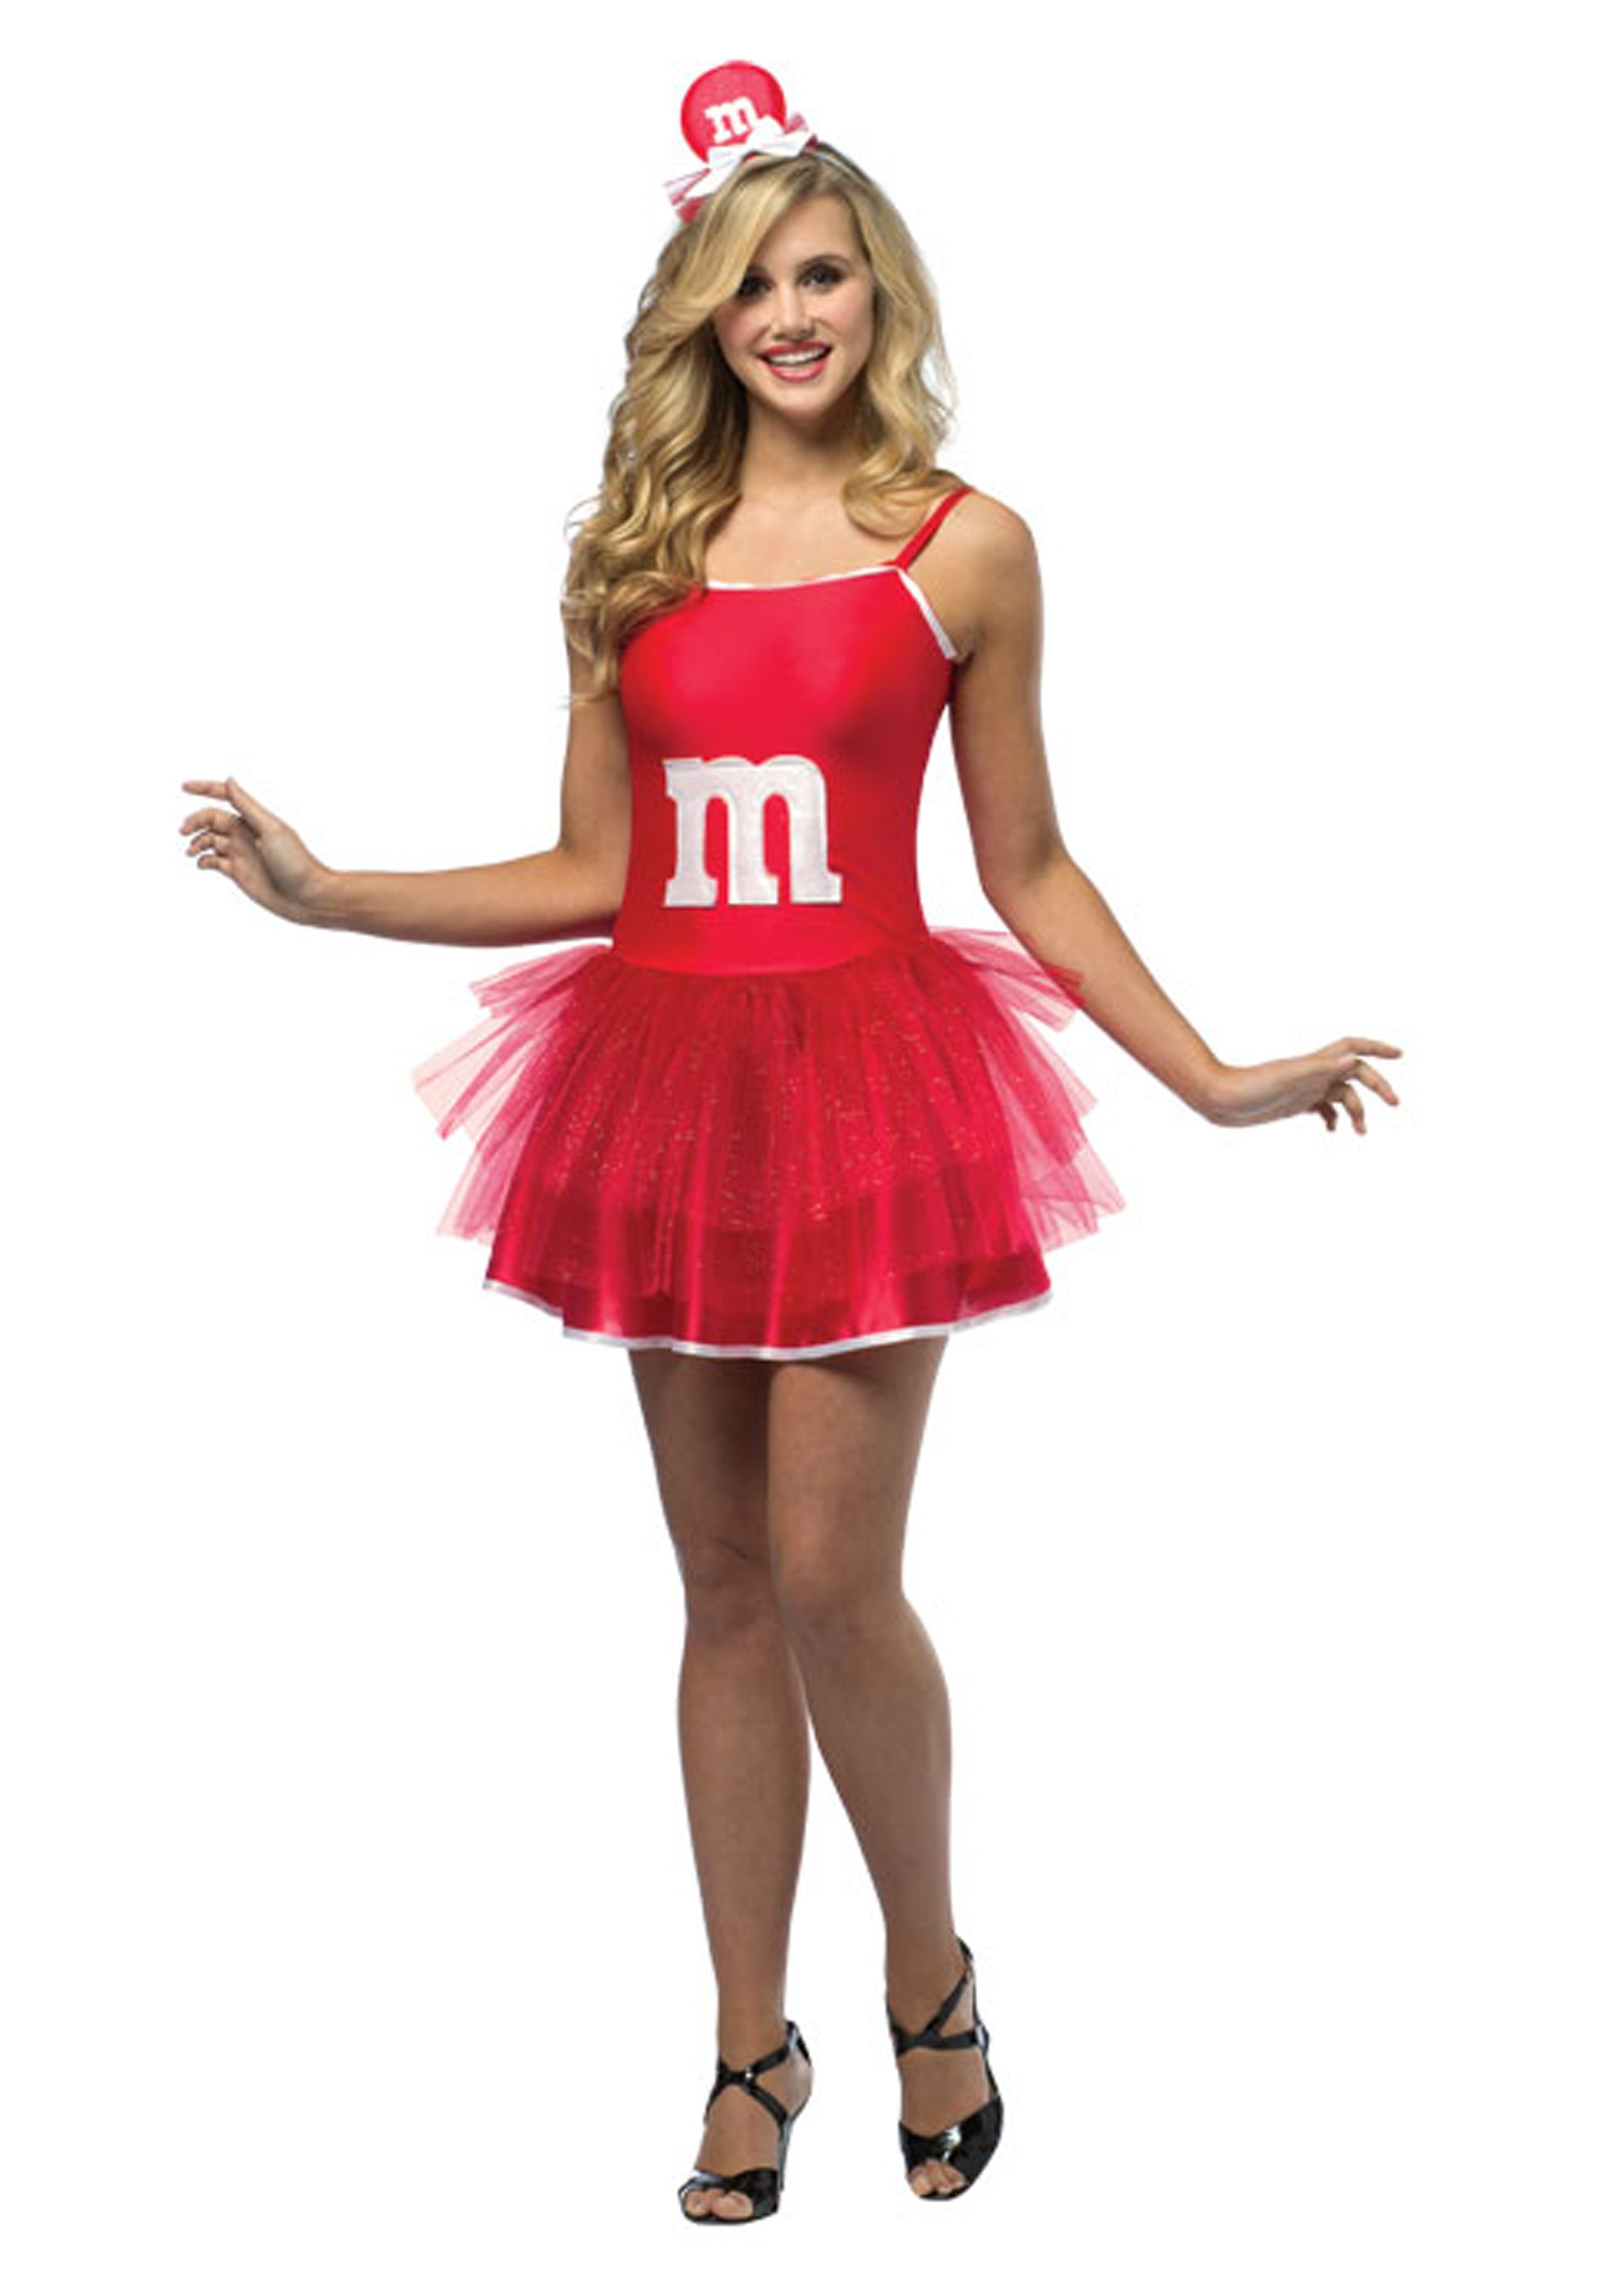 Halloween Costumes That Prove You Can Make Anything Sexy